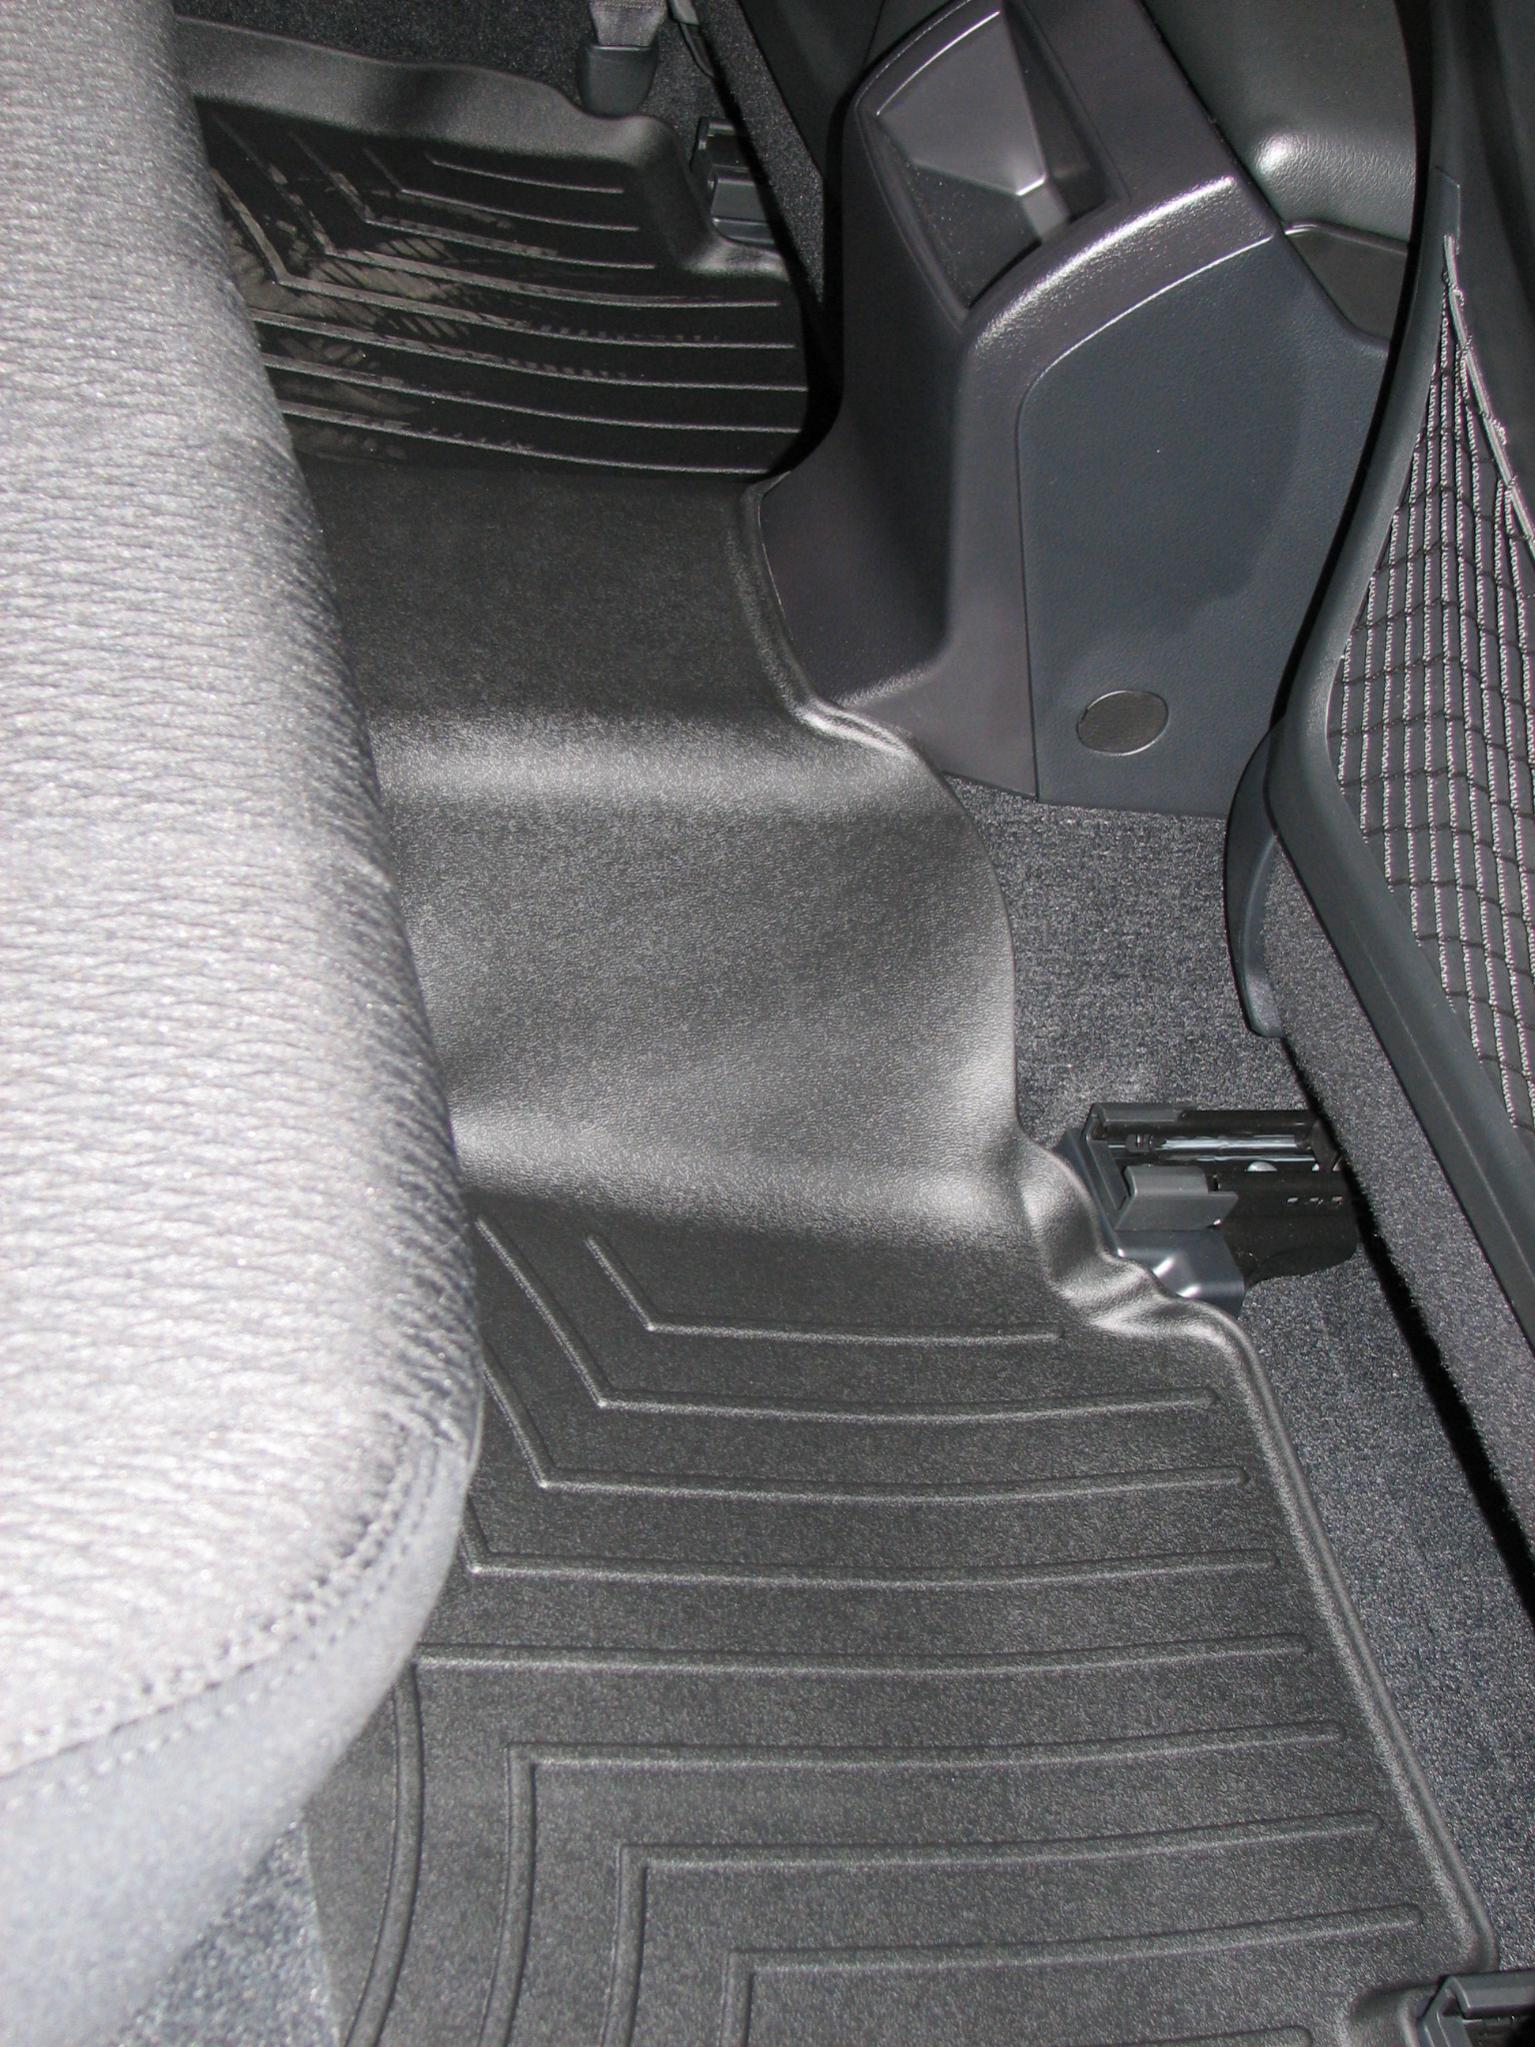 Weathertech mats australia -  Click Image For Larger Version Name 004 Jpg Views 825 Size 471 2